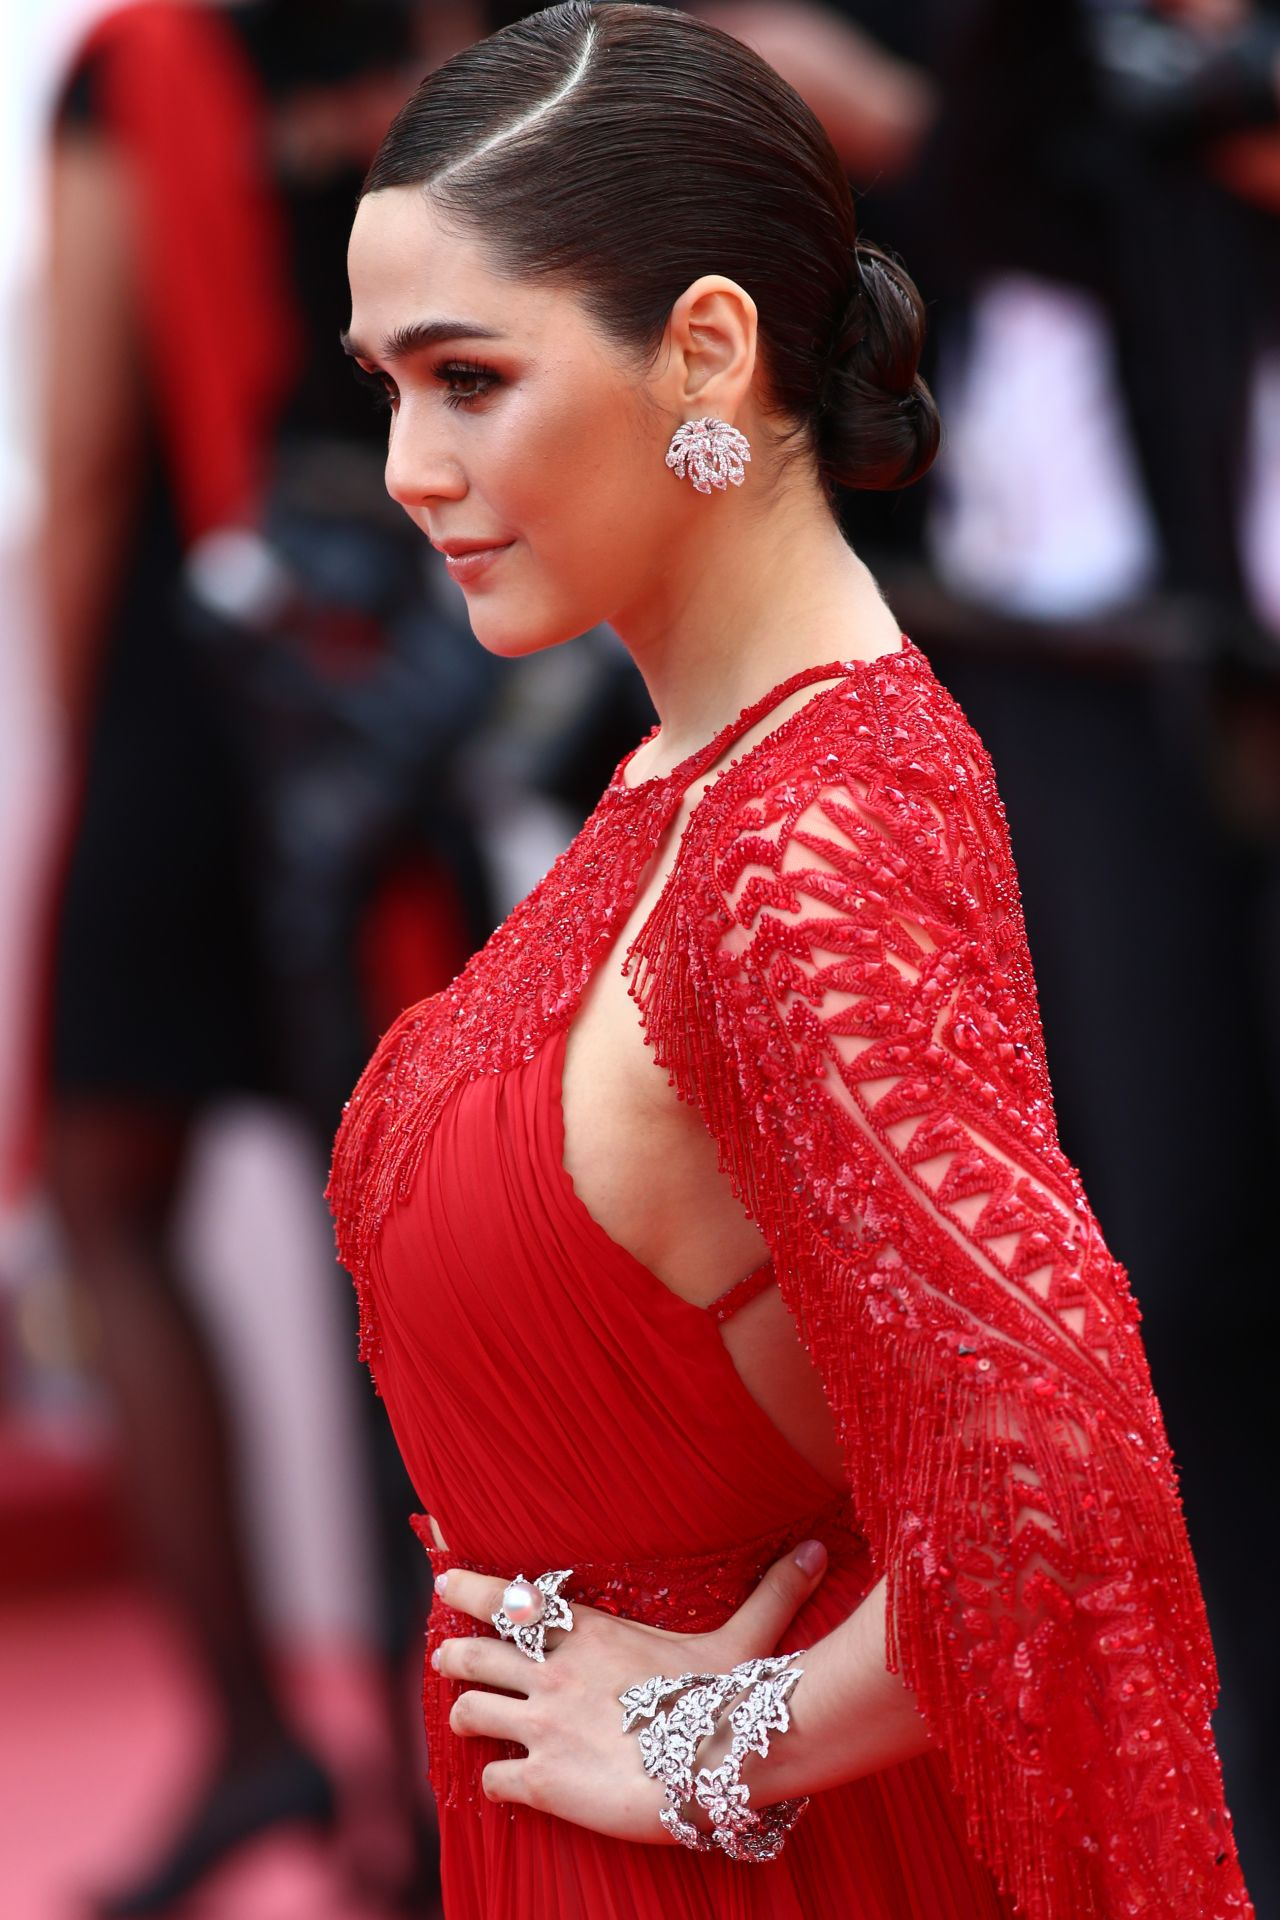 Araya Hargate Everybody Knows Premiere And Cannes Film